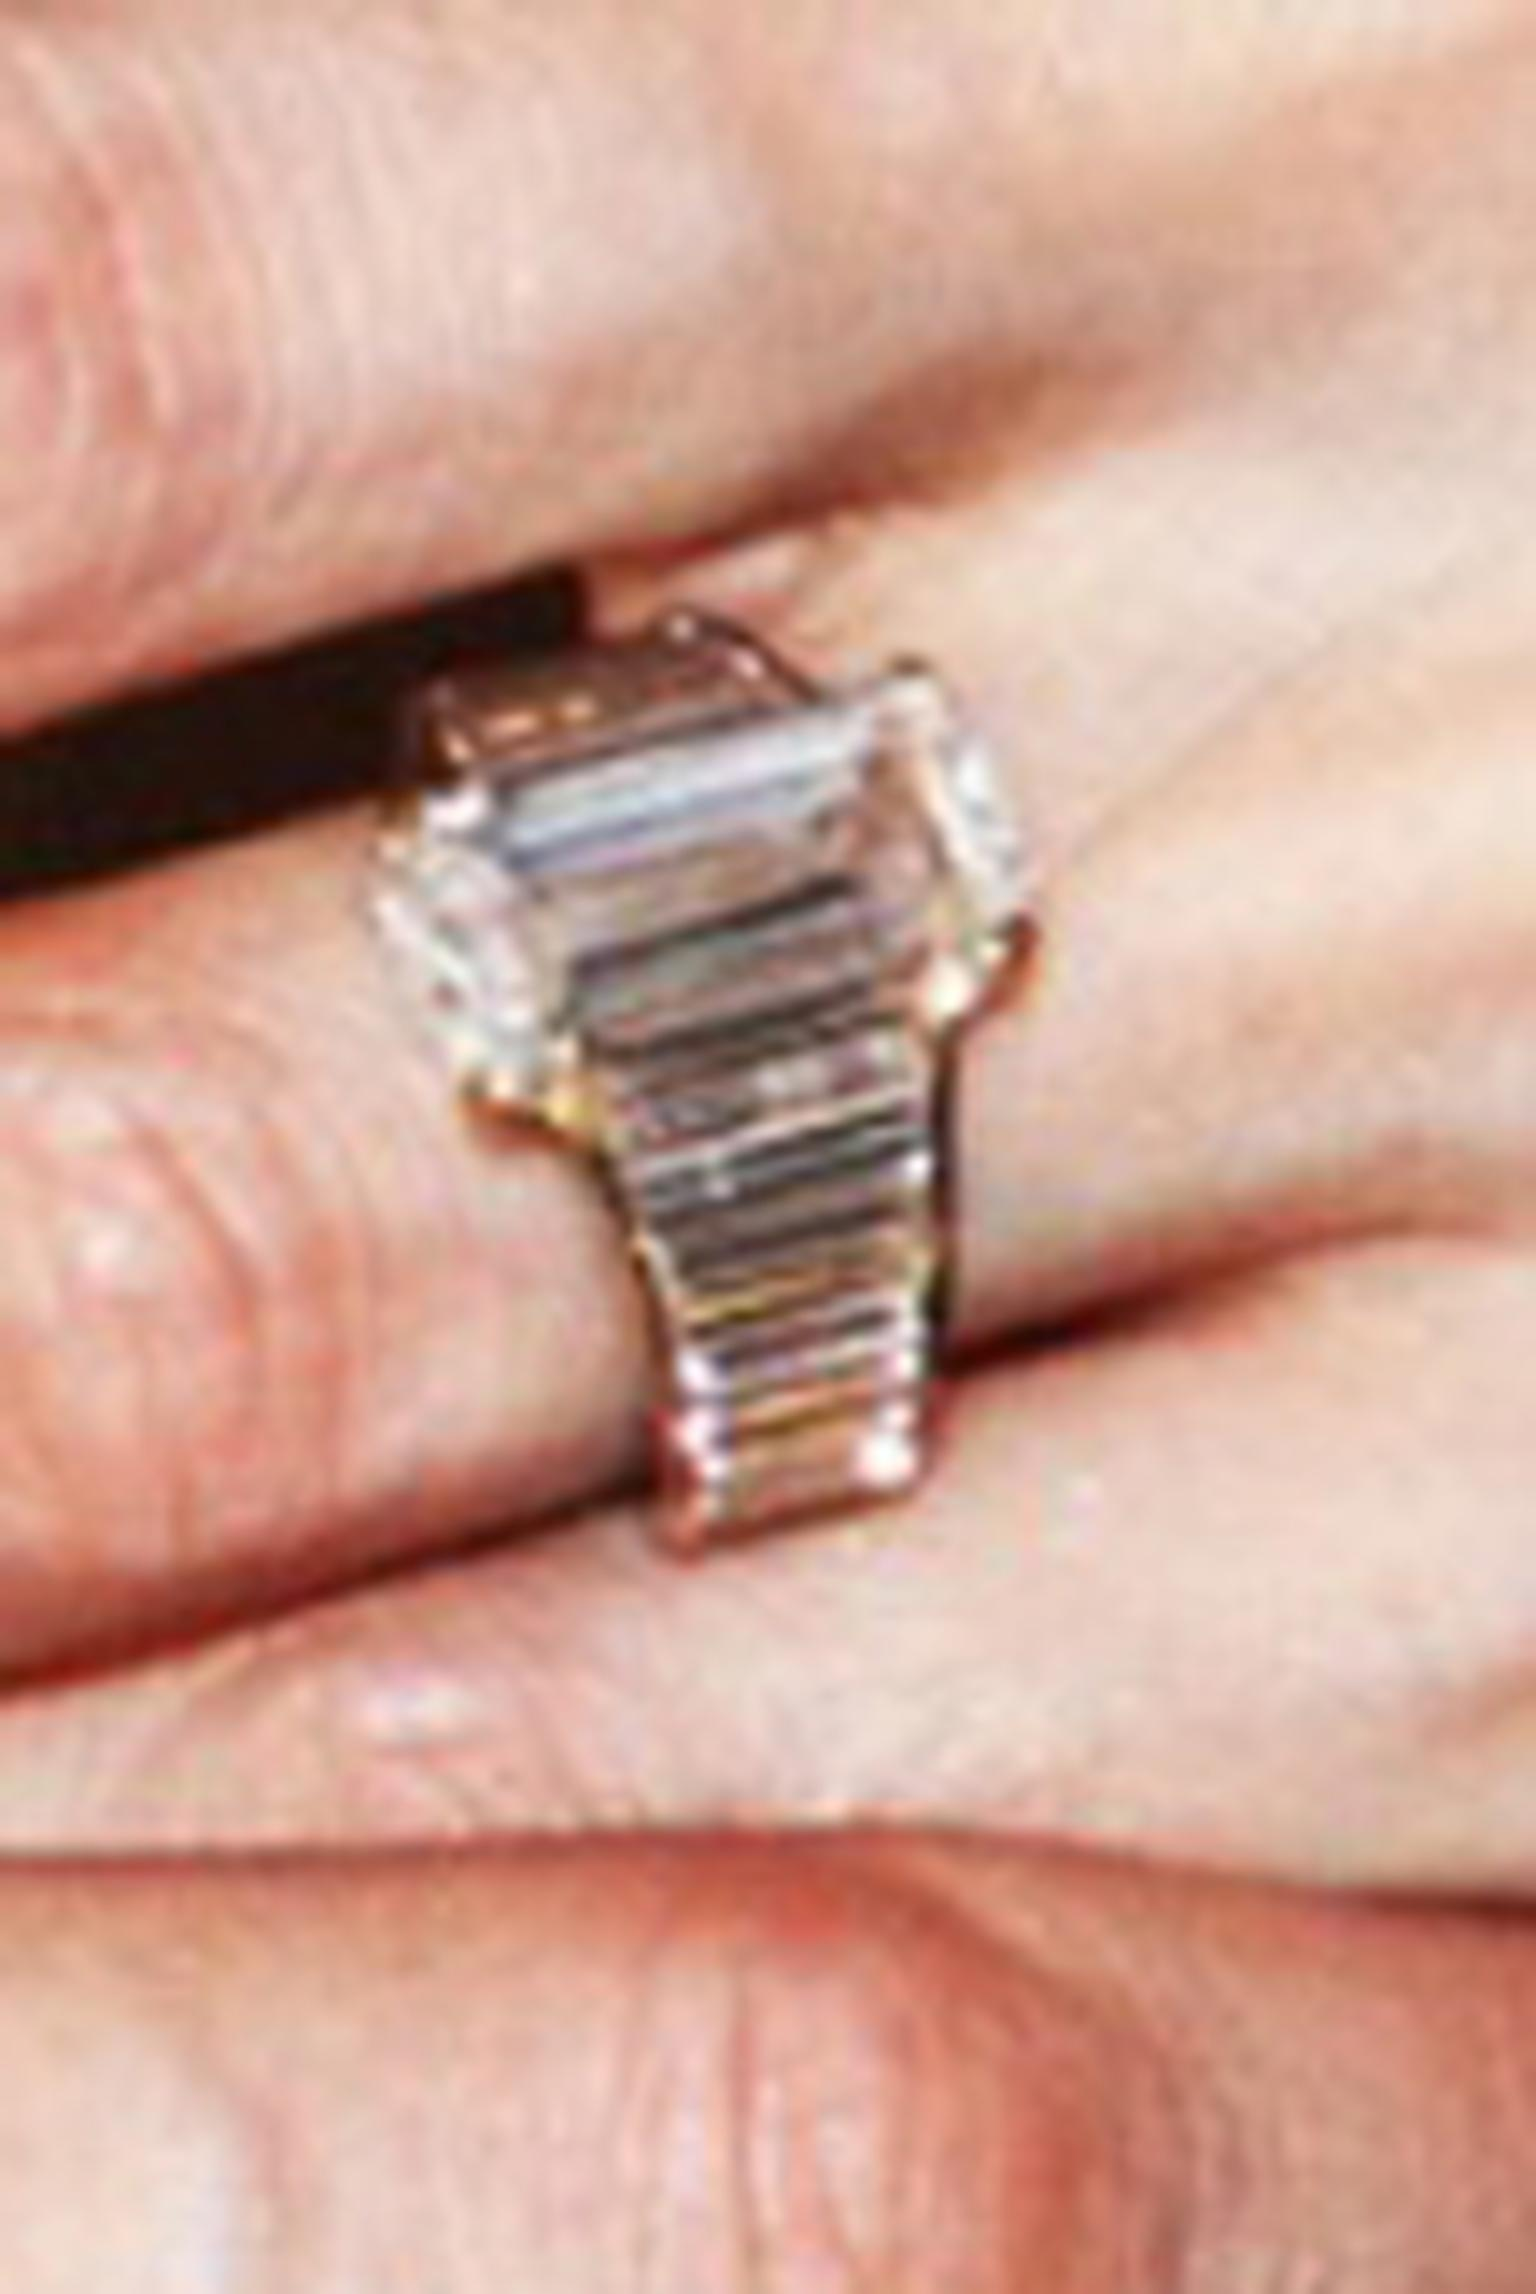 Angelina Jolie's engagement ring HP